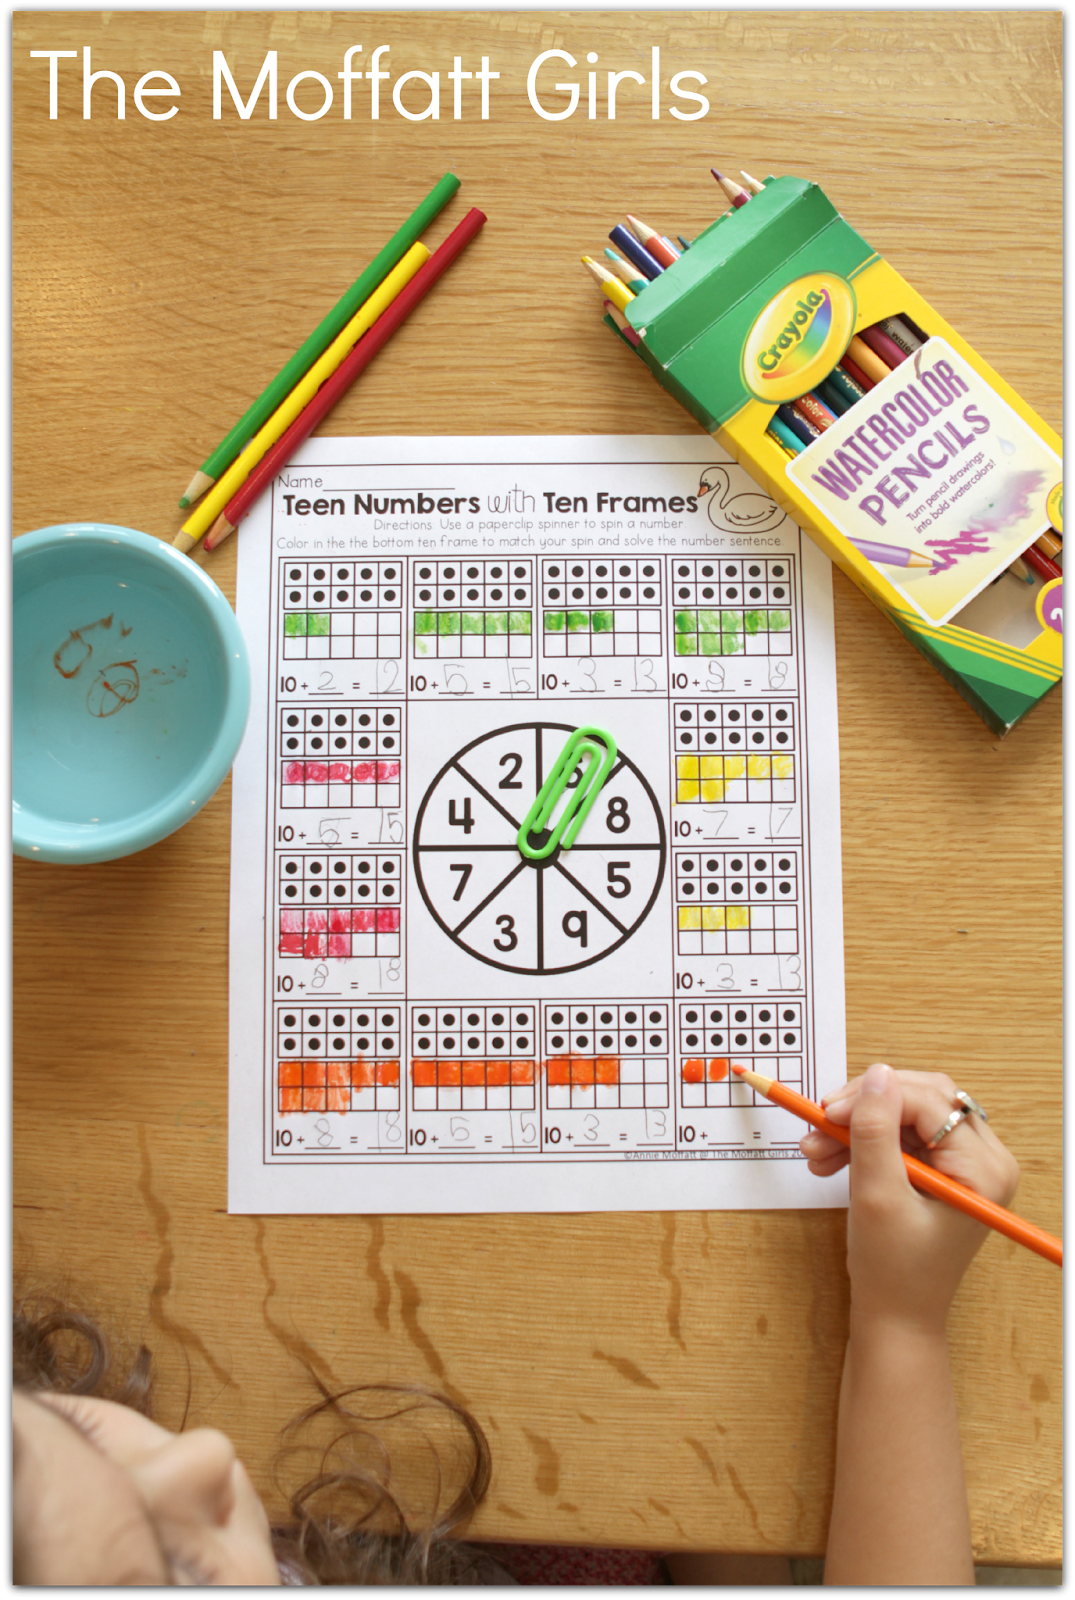 Teen Numbers With Ten Frames Build Math Skills With This